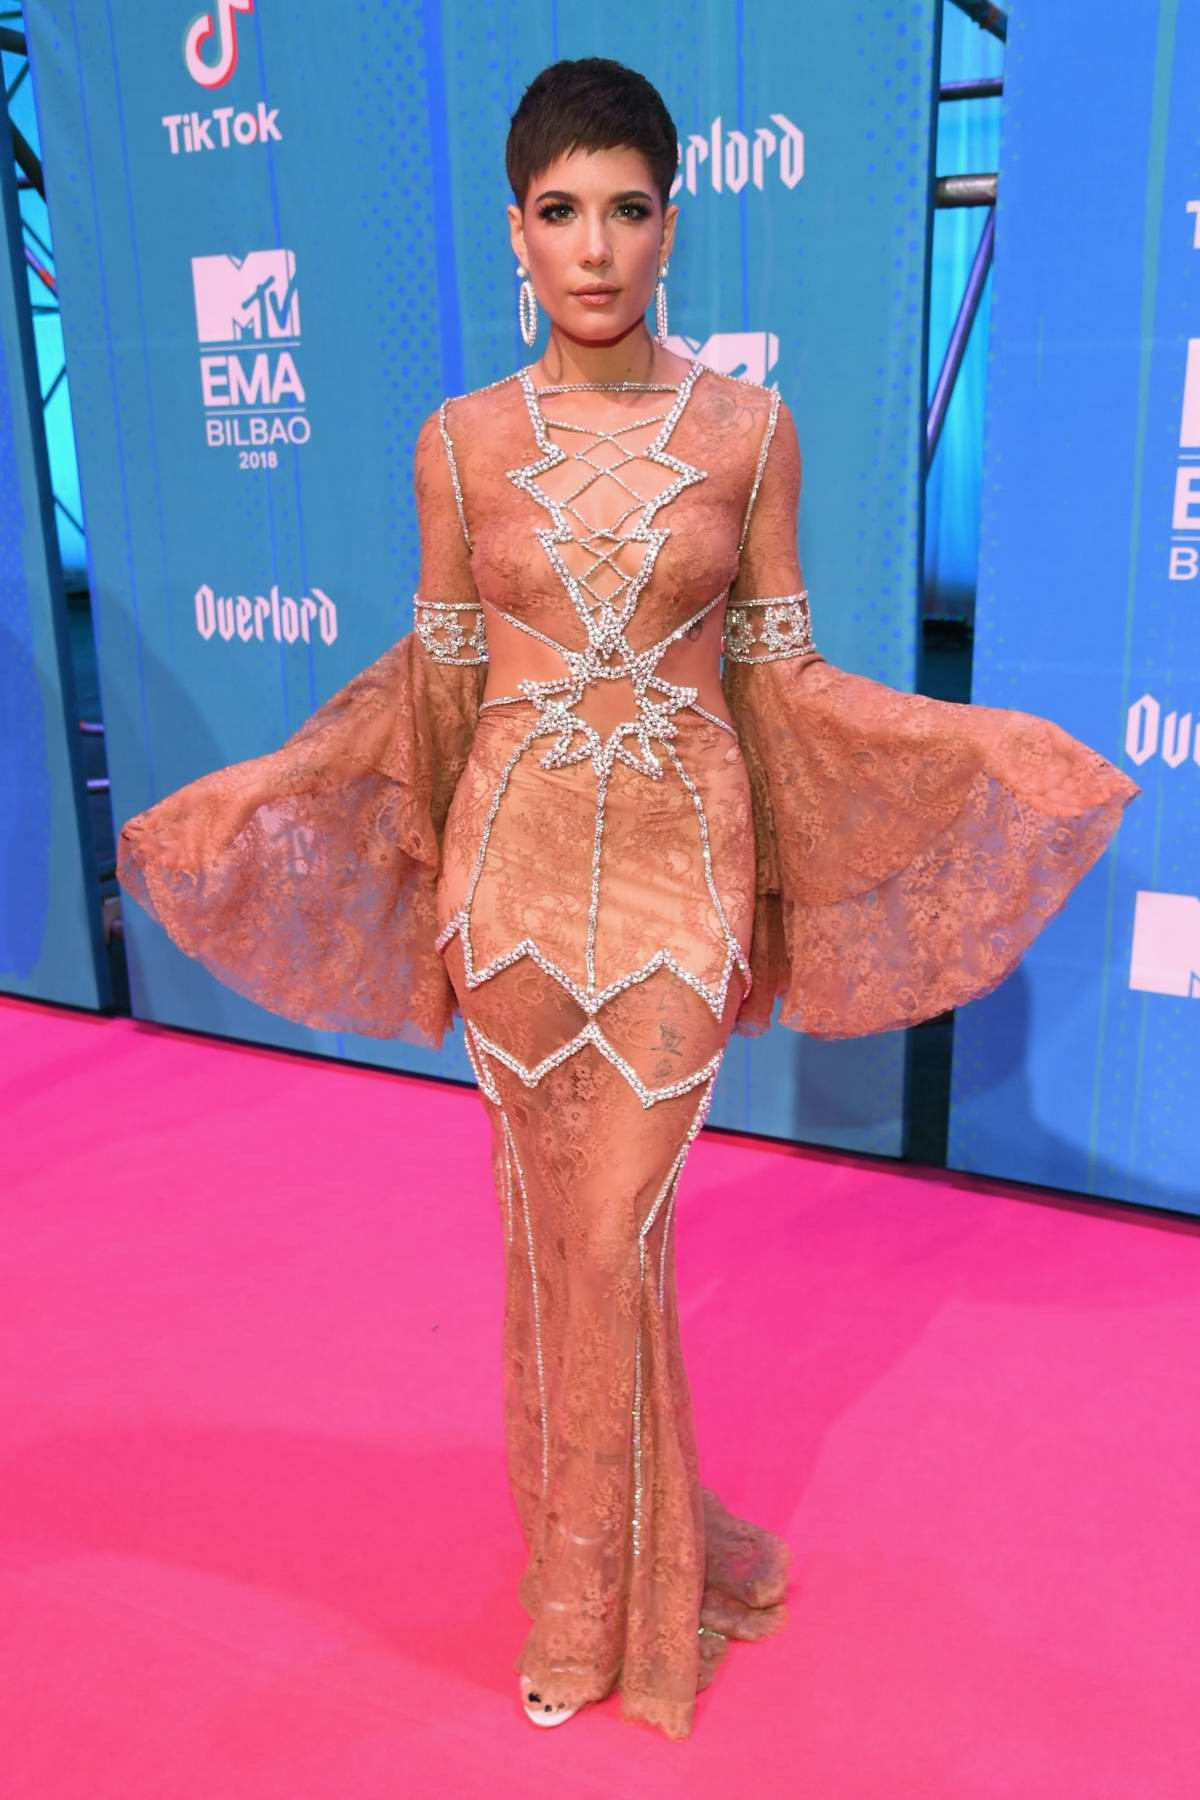 Halsey attends the MTV EMAs 2018 at the Bilbao Exhibition Centre in Bilbao, Spain